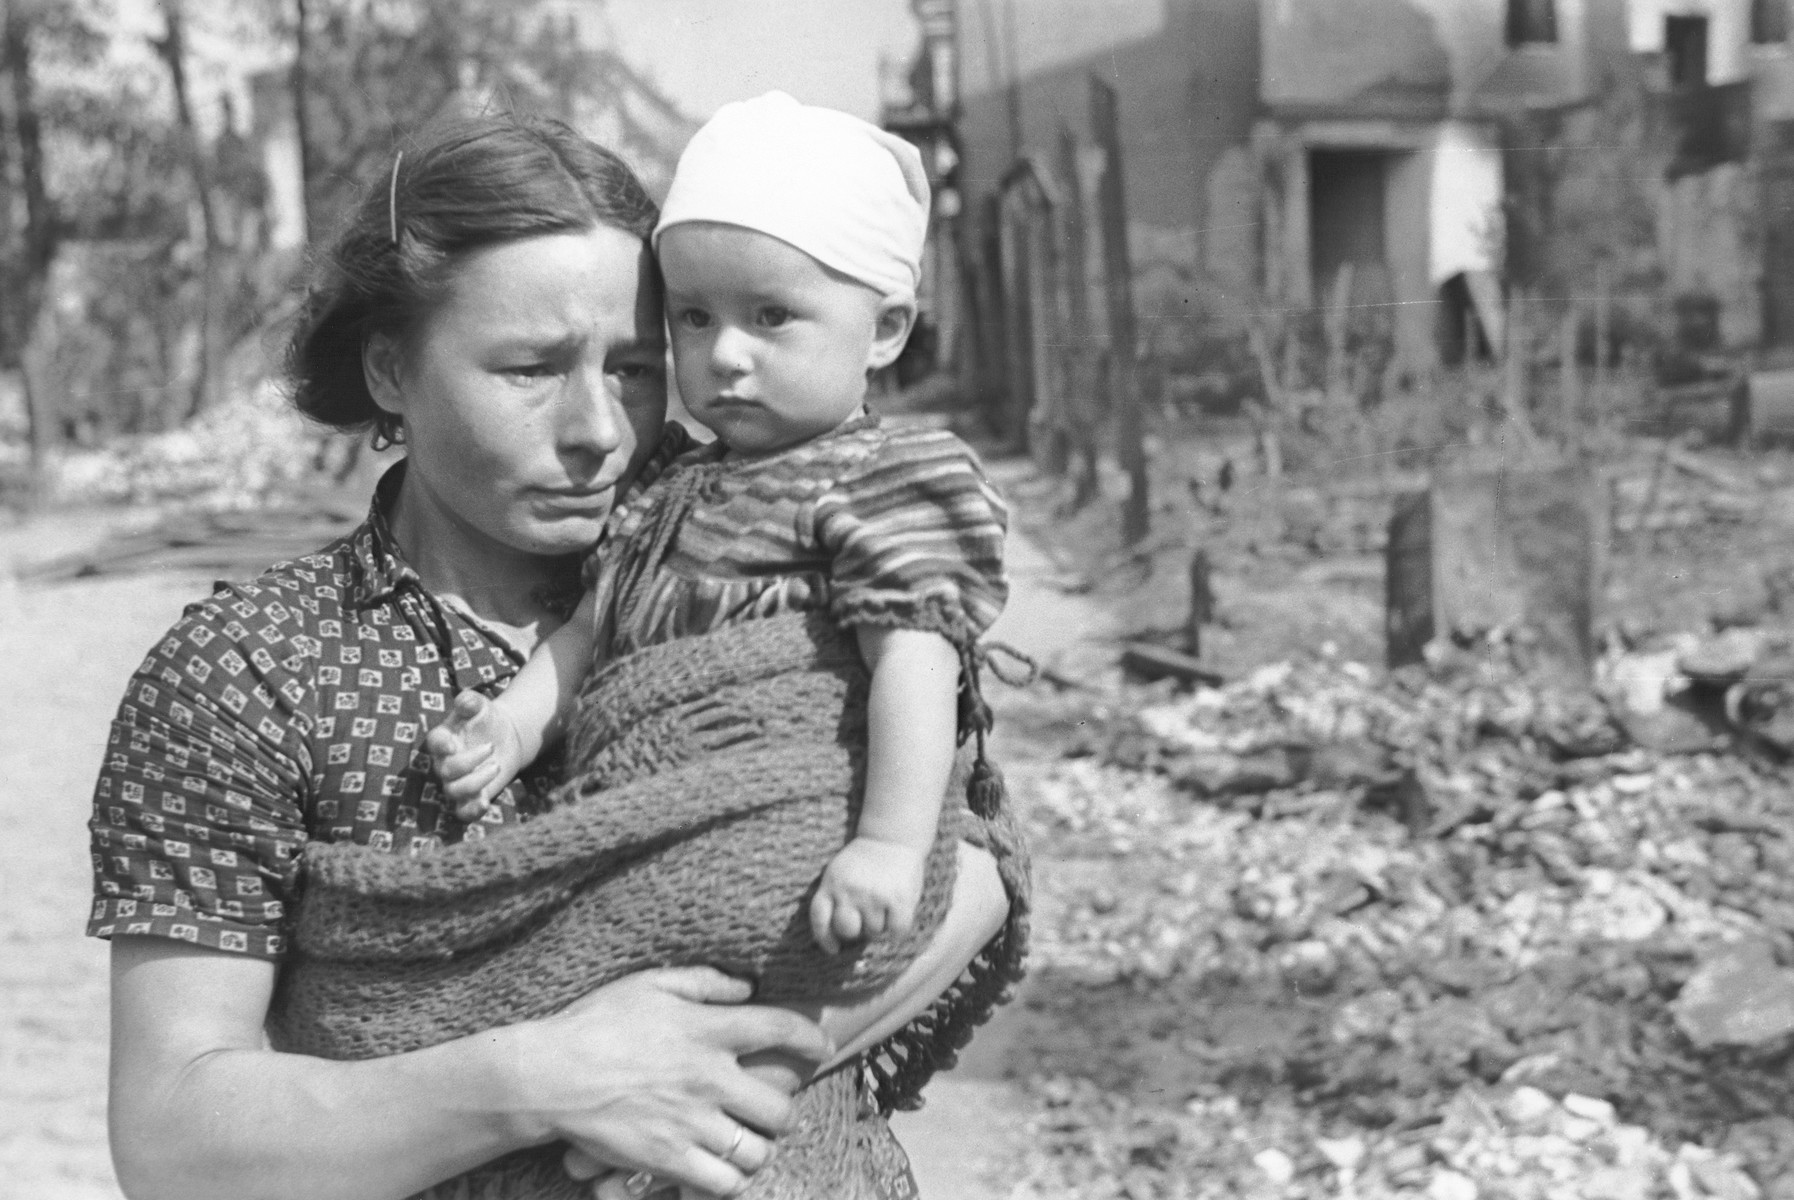 A Polish mother and child pose amidst the rubble on a street in Warsaw that had been bombed during the siege of the capital.